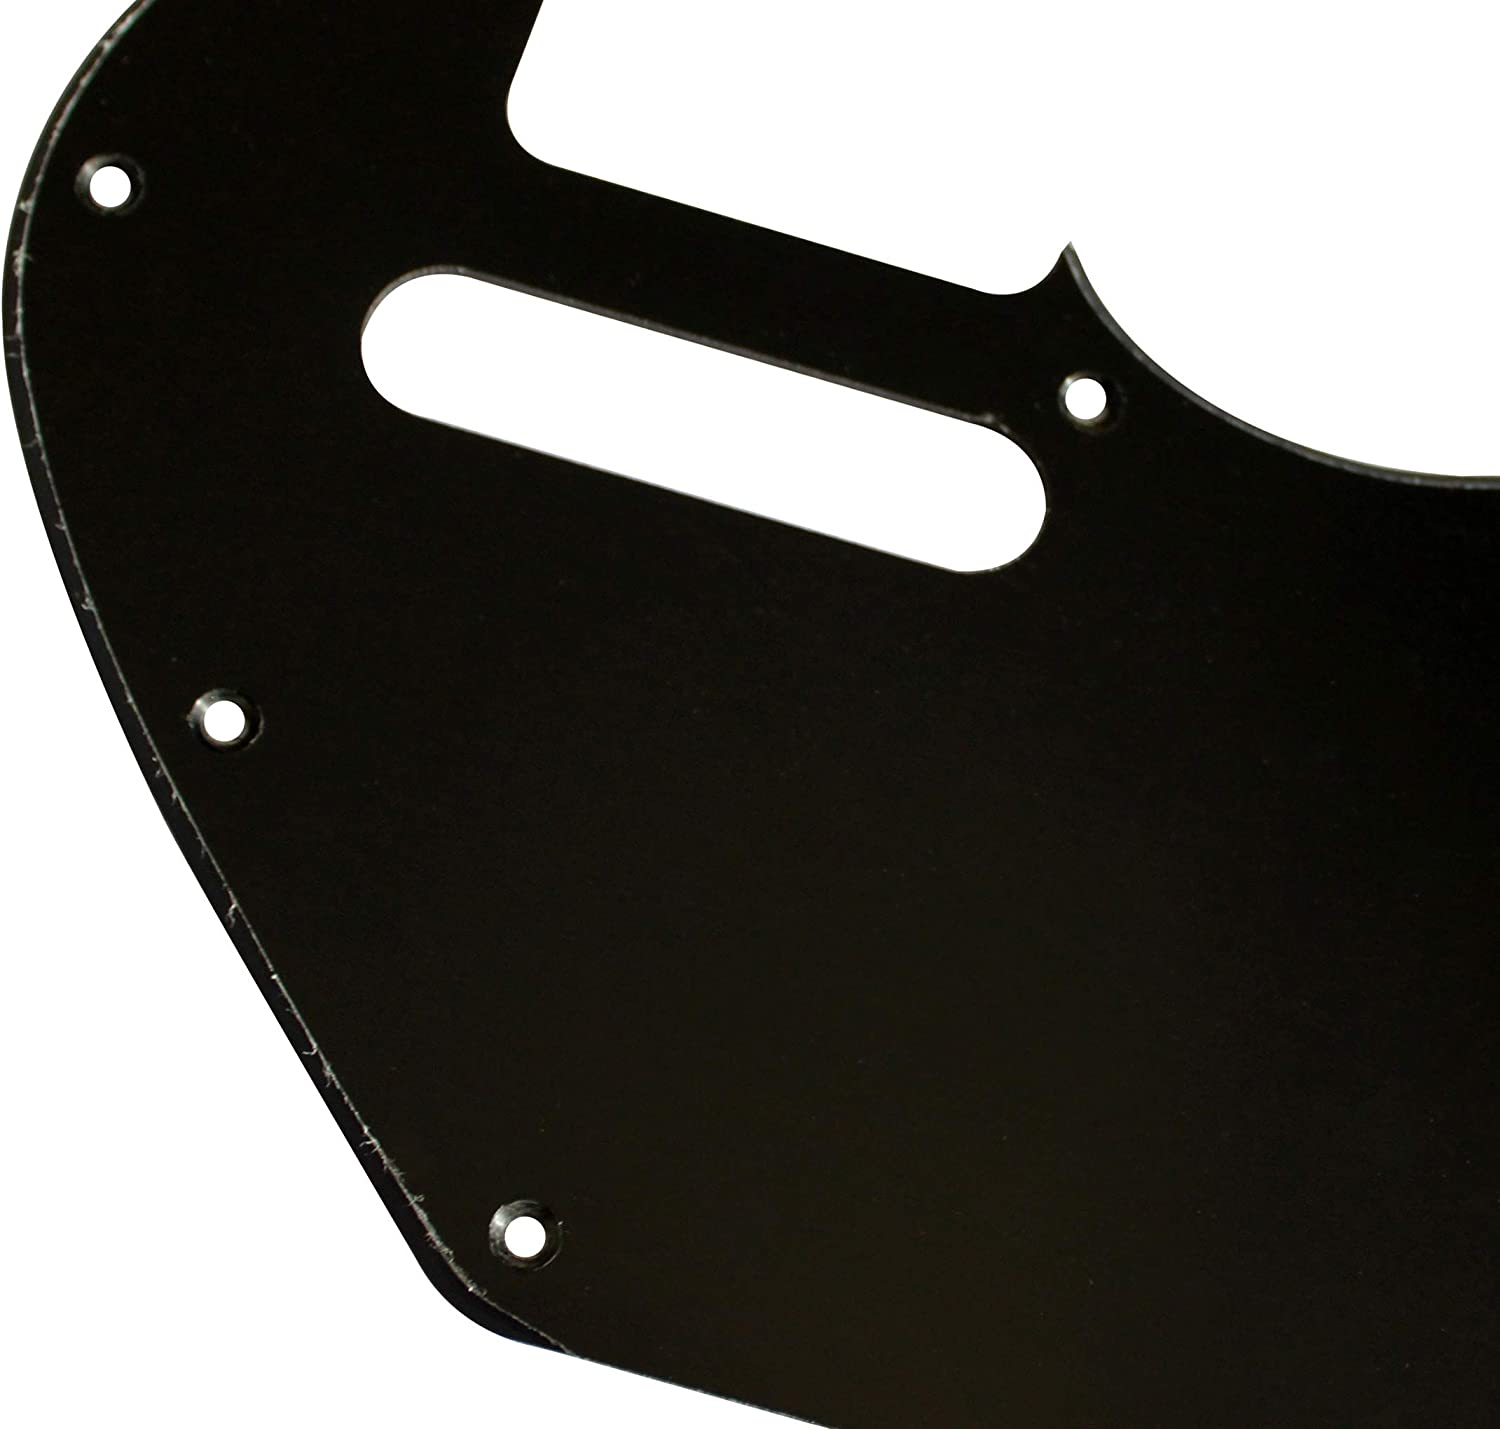 For Merle Haggard F Hole Telecaster Style Guitar Pickguard Scratch Plate 1 Ply Black